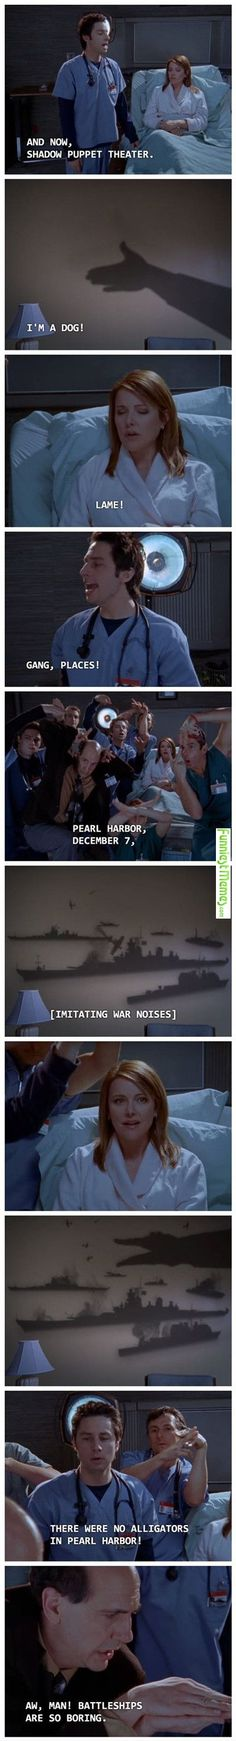 Funny Memes - [And Now, Shadow Puppet...] Check more at http://www.funniestmemes.com/funny-memes-and-now-shadow-puppet/